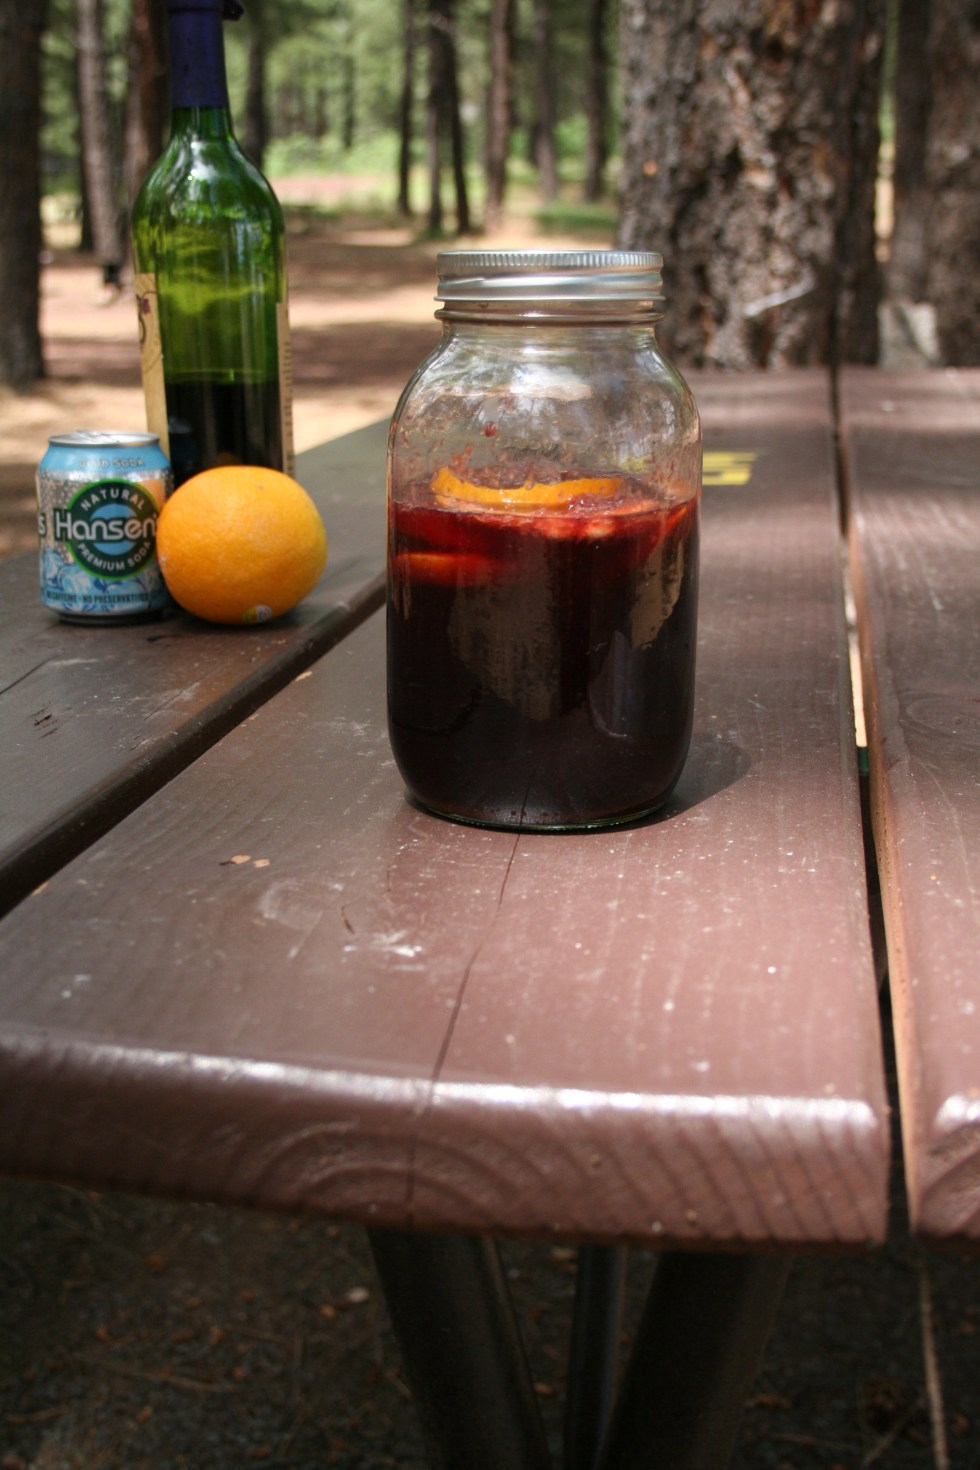 Camping Sangria - Sangria is an easy cocktail to make while camping. It is sweet and refreshing with club soda, orange juice and red wine.